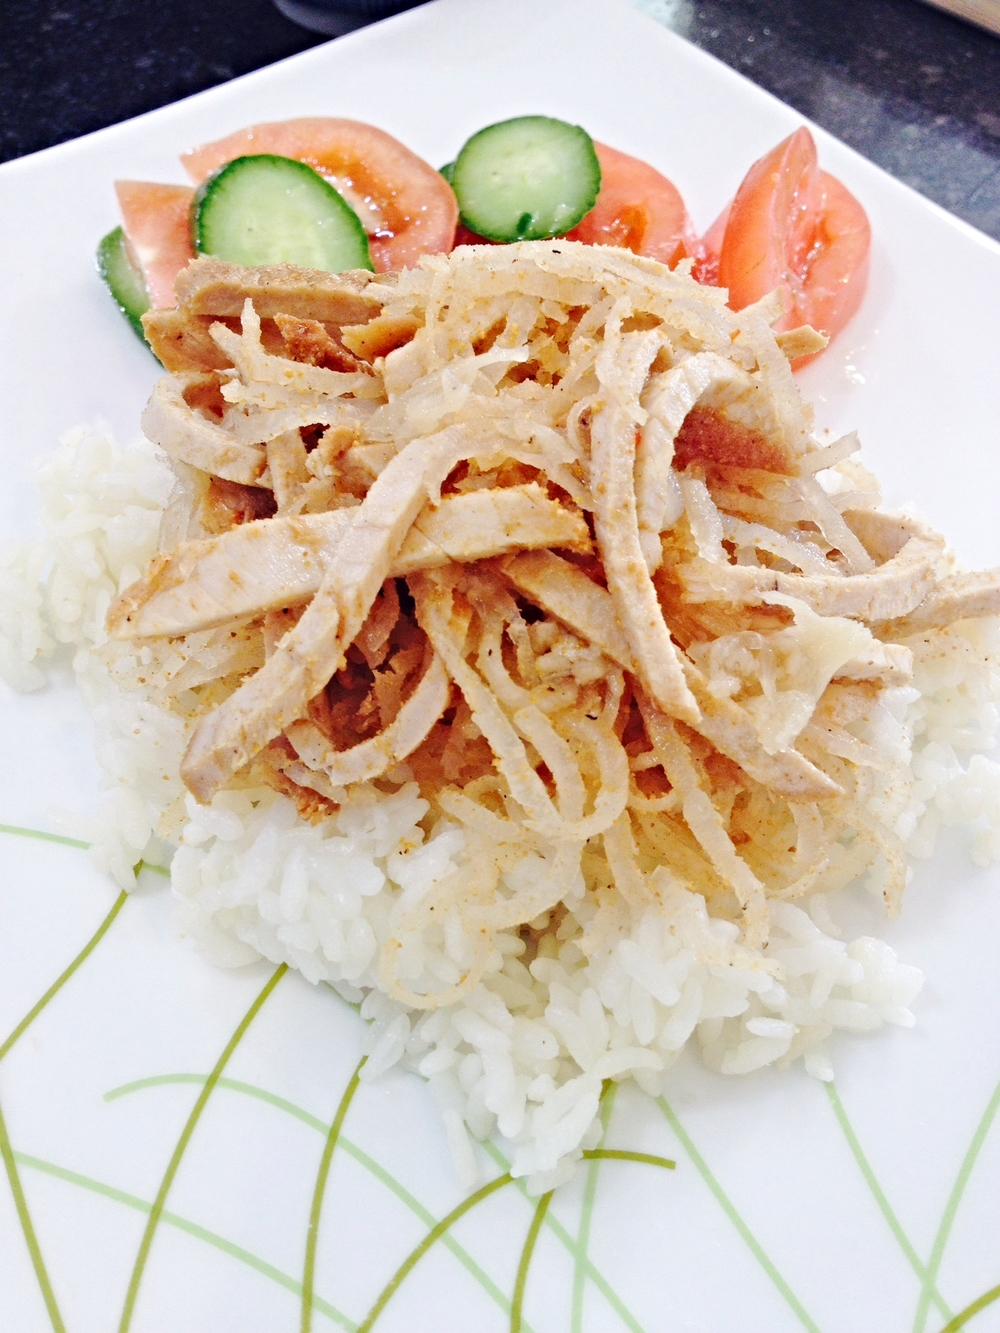 Shredded Pork & Rice (Com Bi)